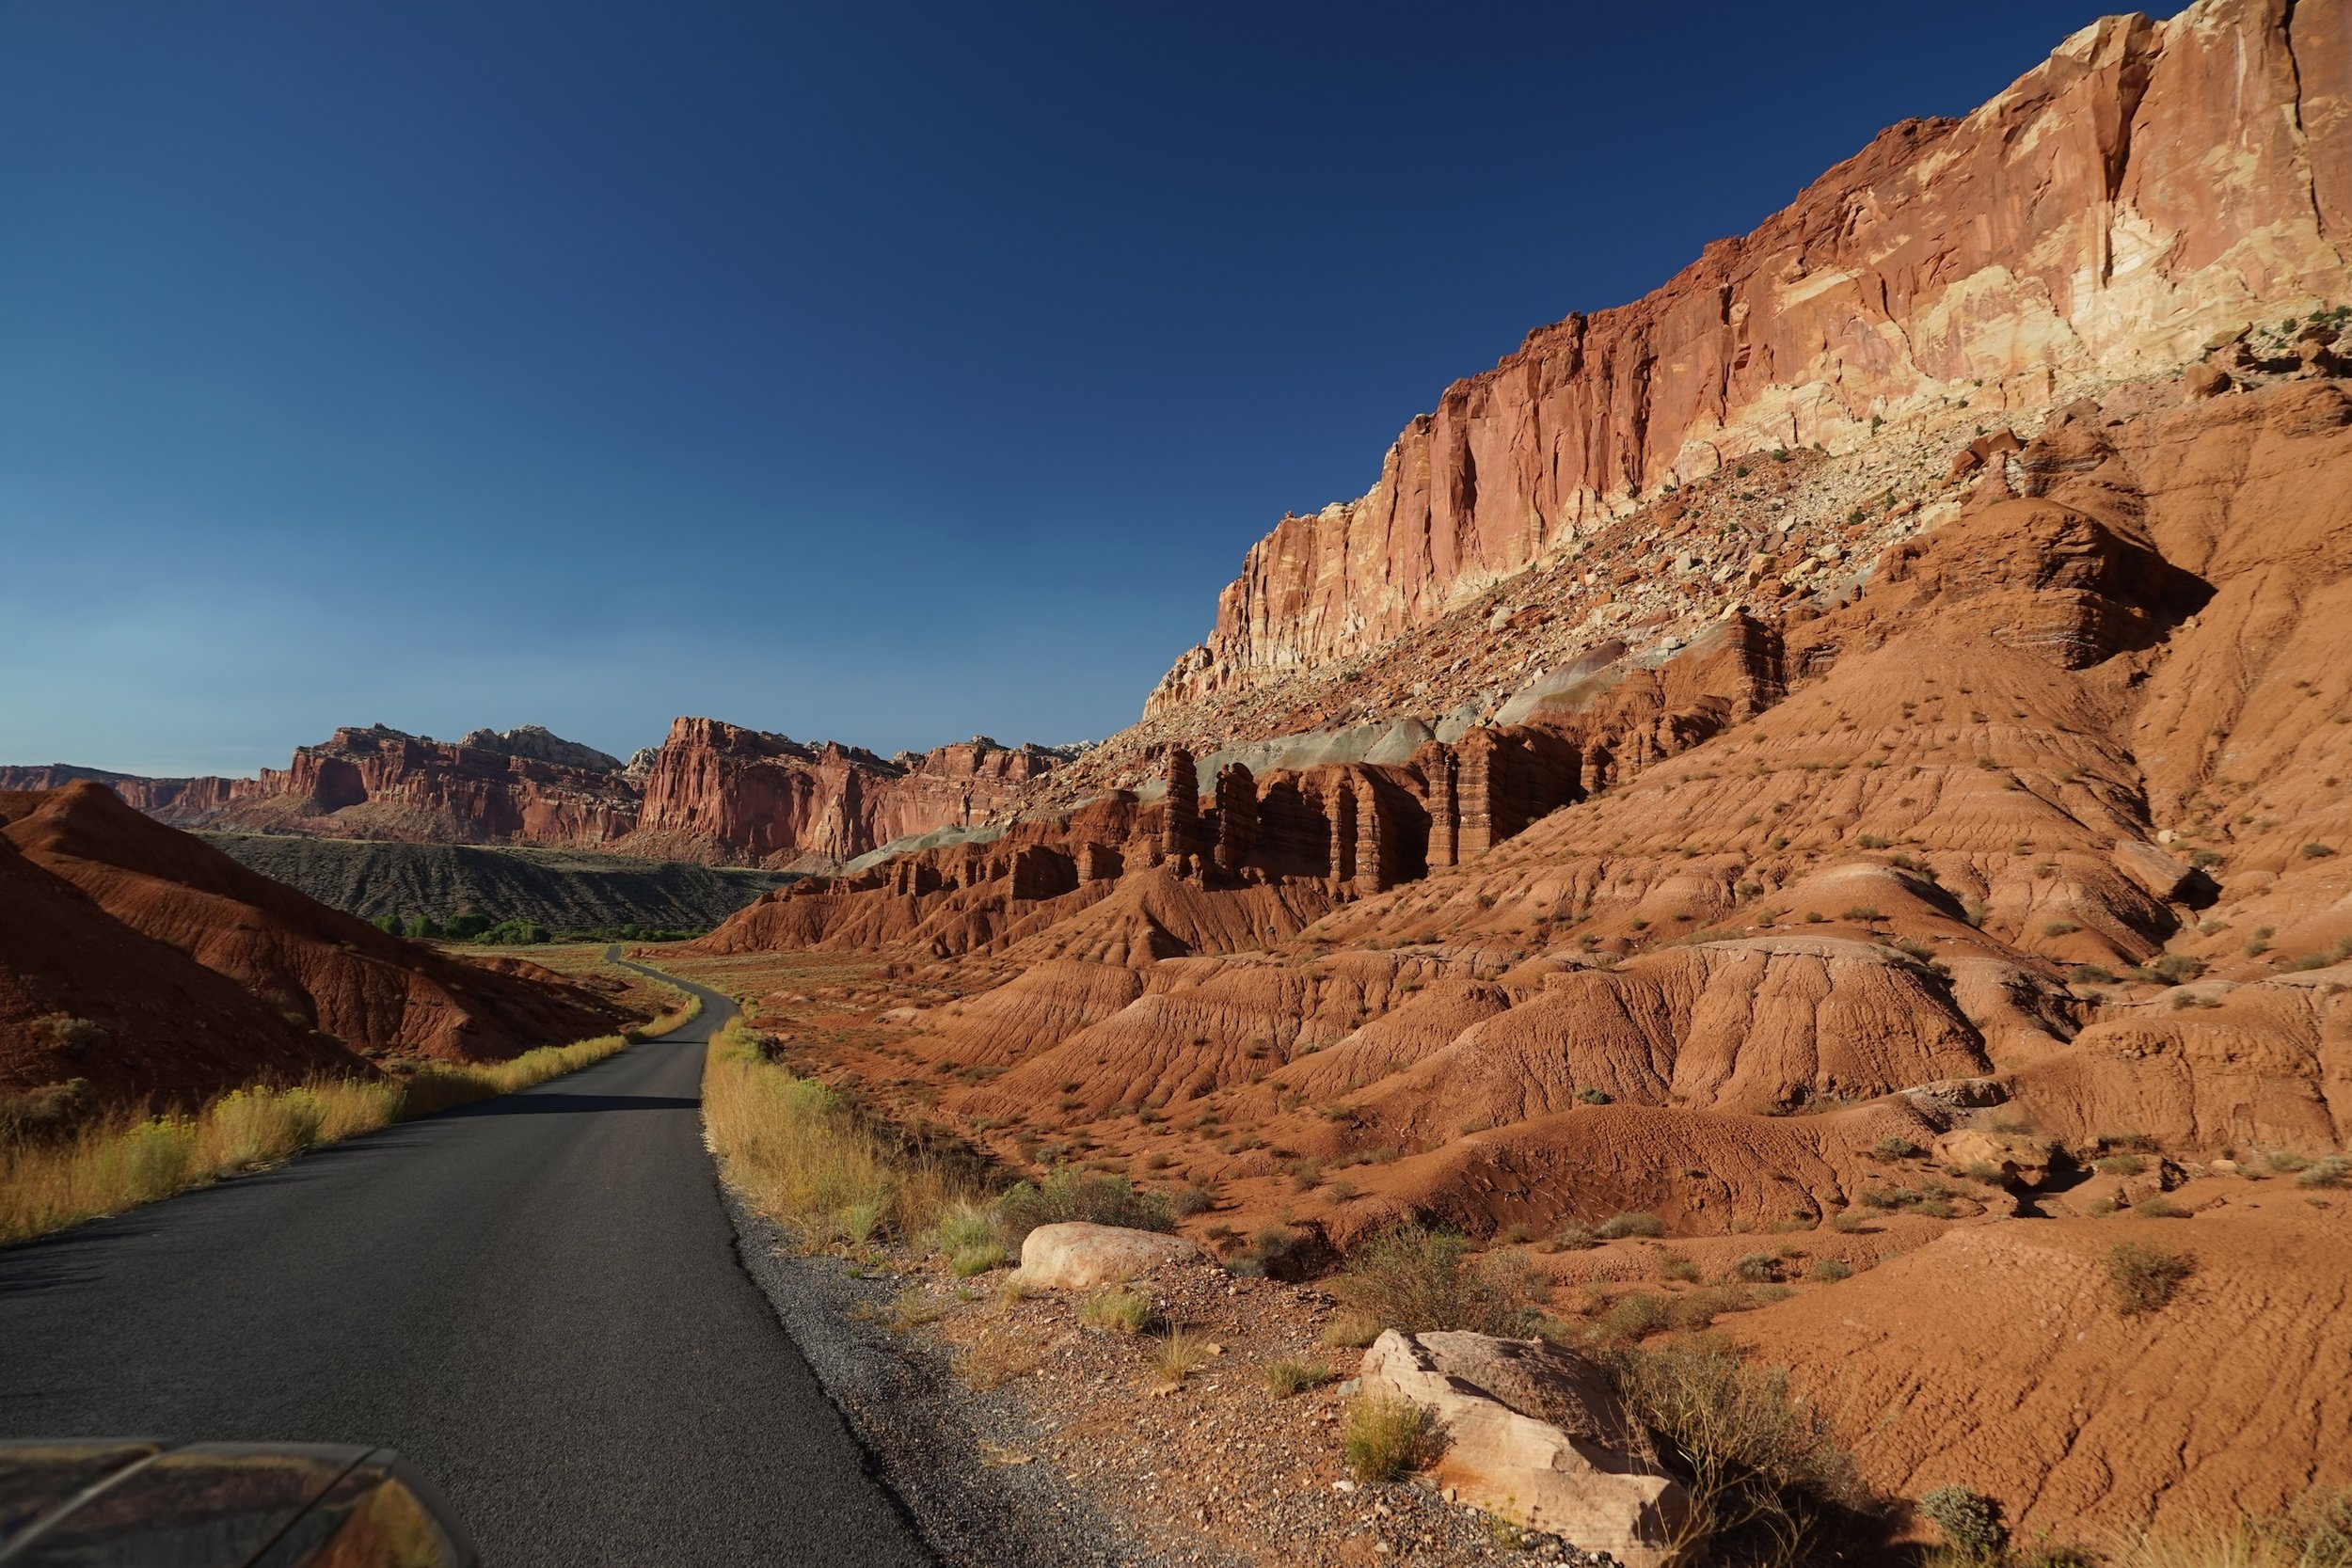 The Scenic Drive in Capitol Reef National Park